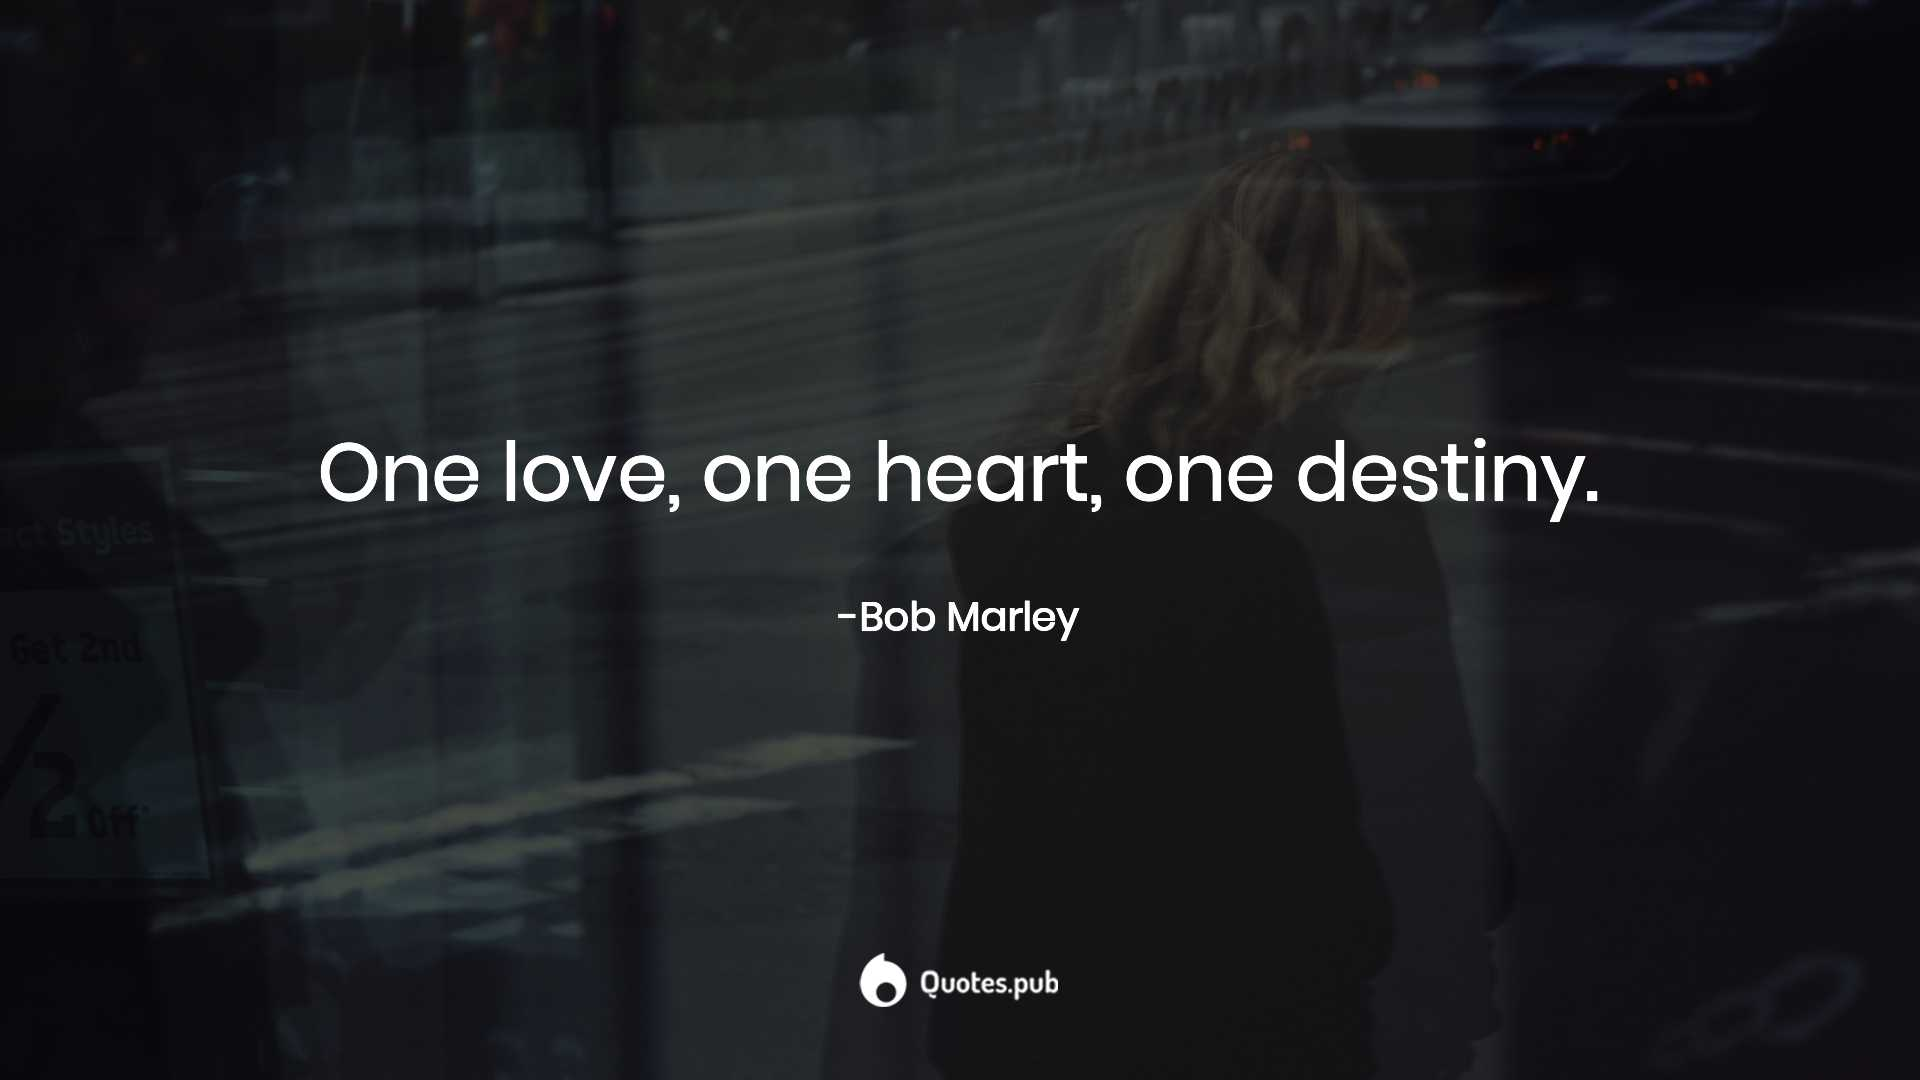 One Love One Heart One Destiny Bob Marley Quotespub